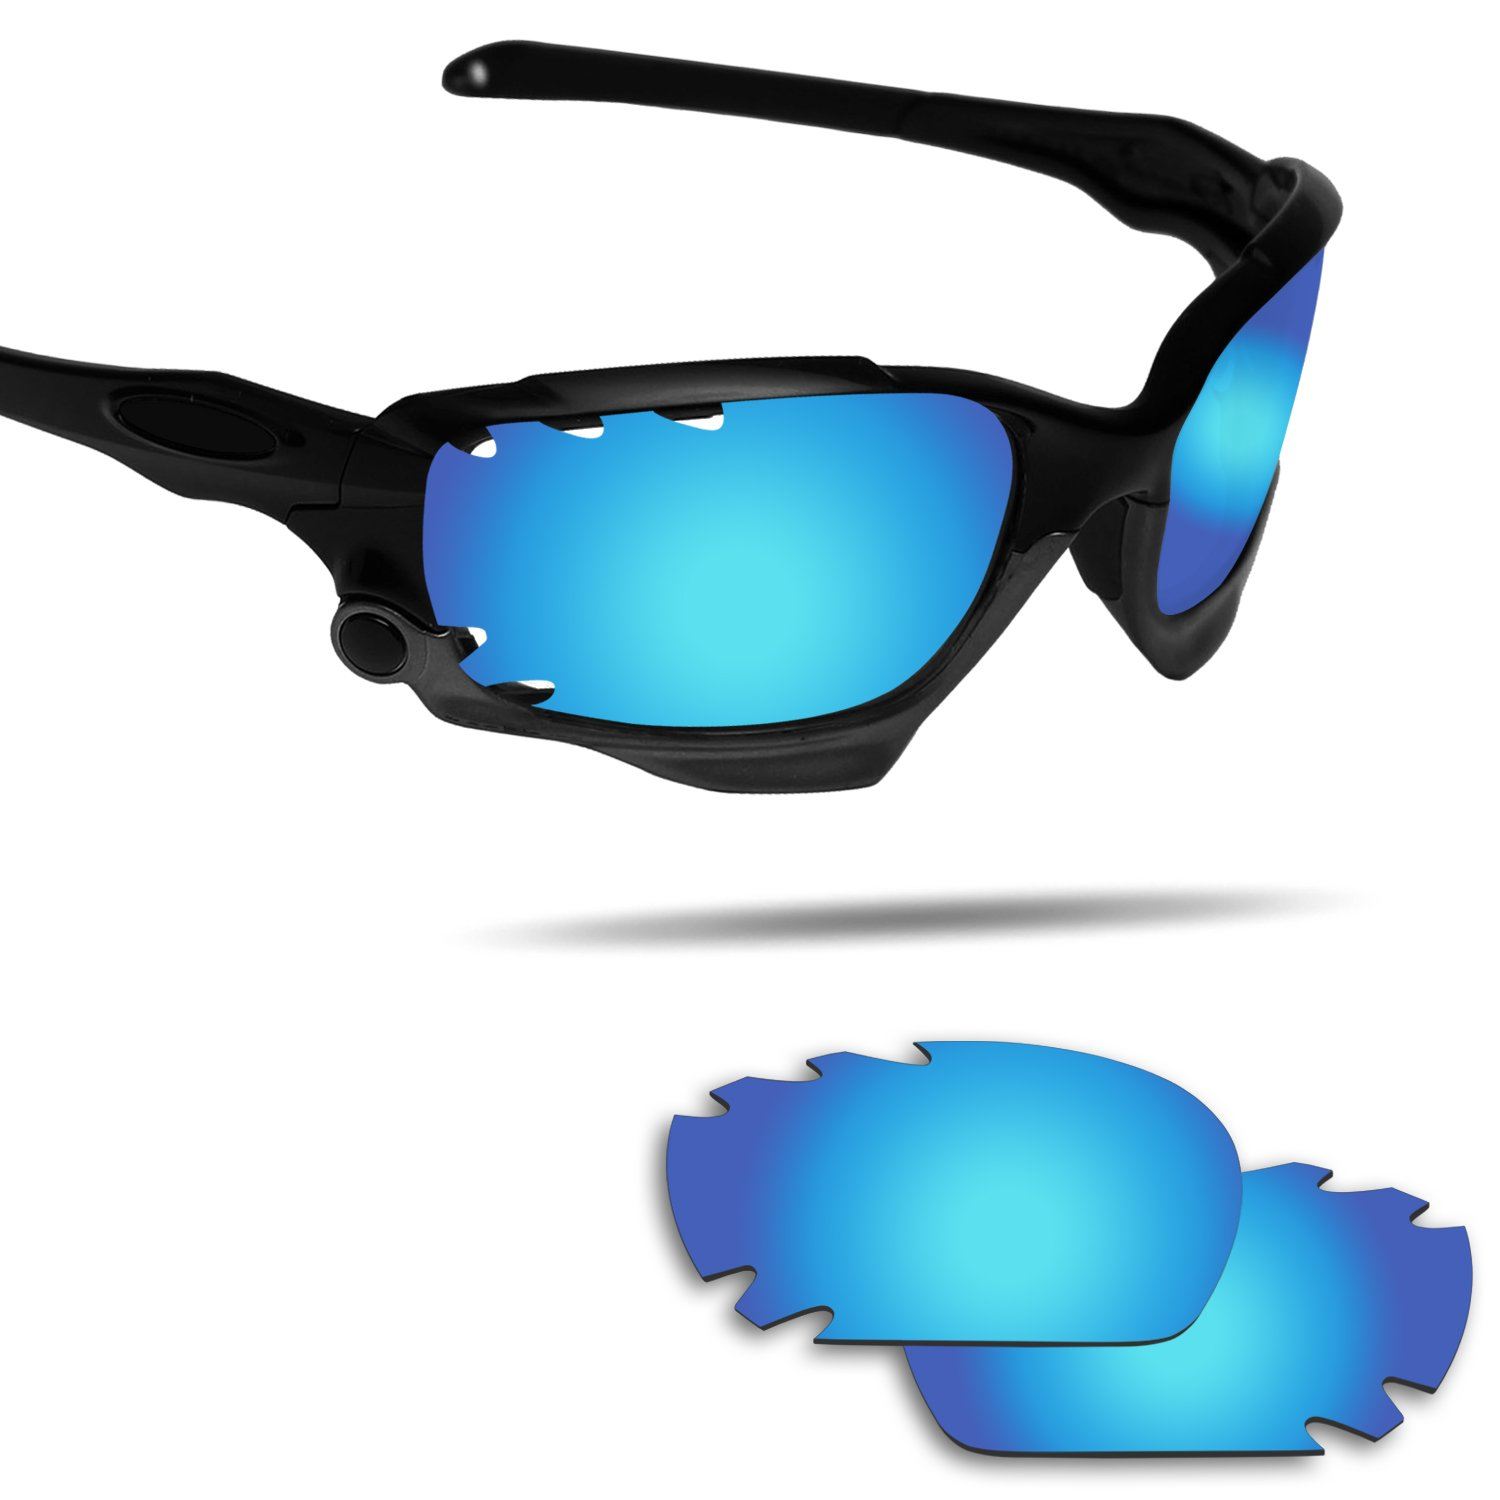 Fiskr Anti-Saltwater Replacement Lenses for Oakley Jawbone Vented Sunglasses - Various Colors by Fiskr